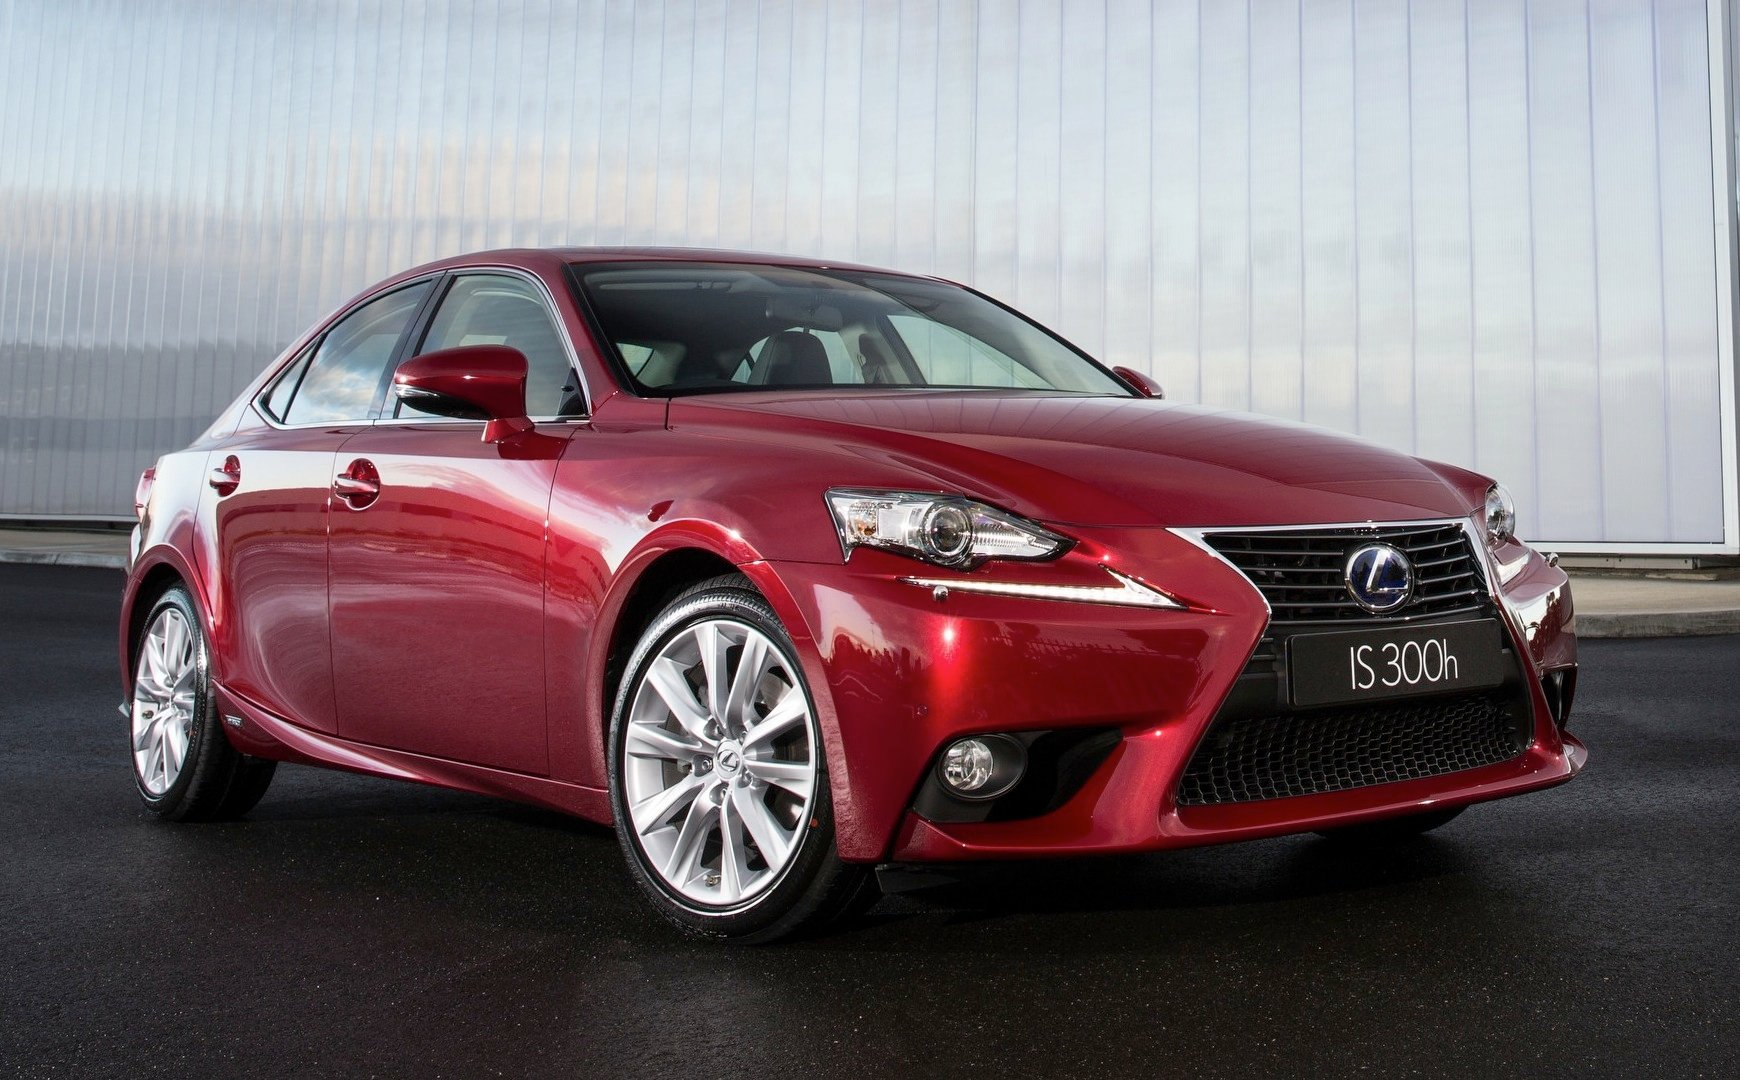 Lexus IS300h Review - Photos